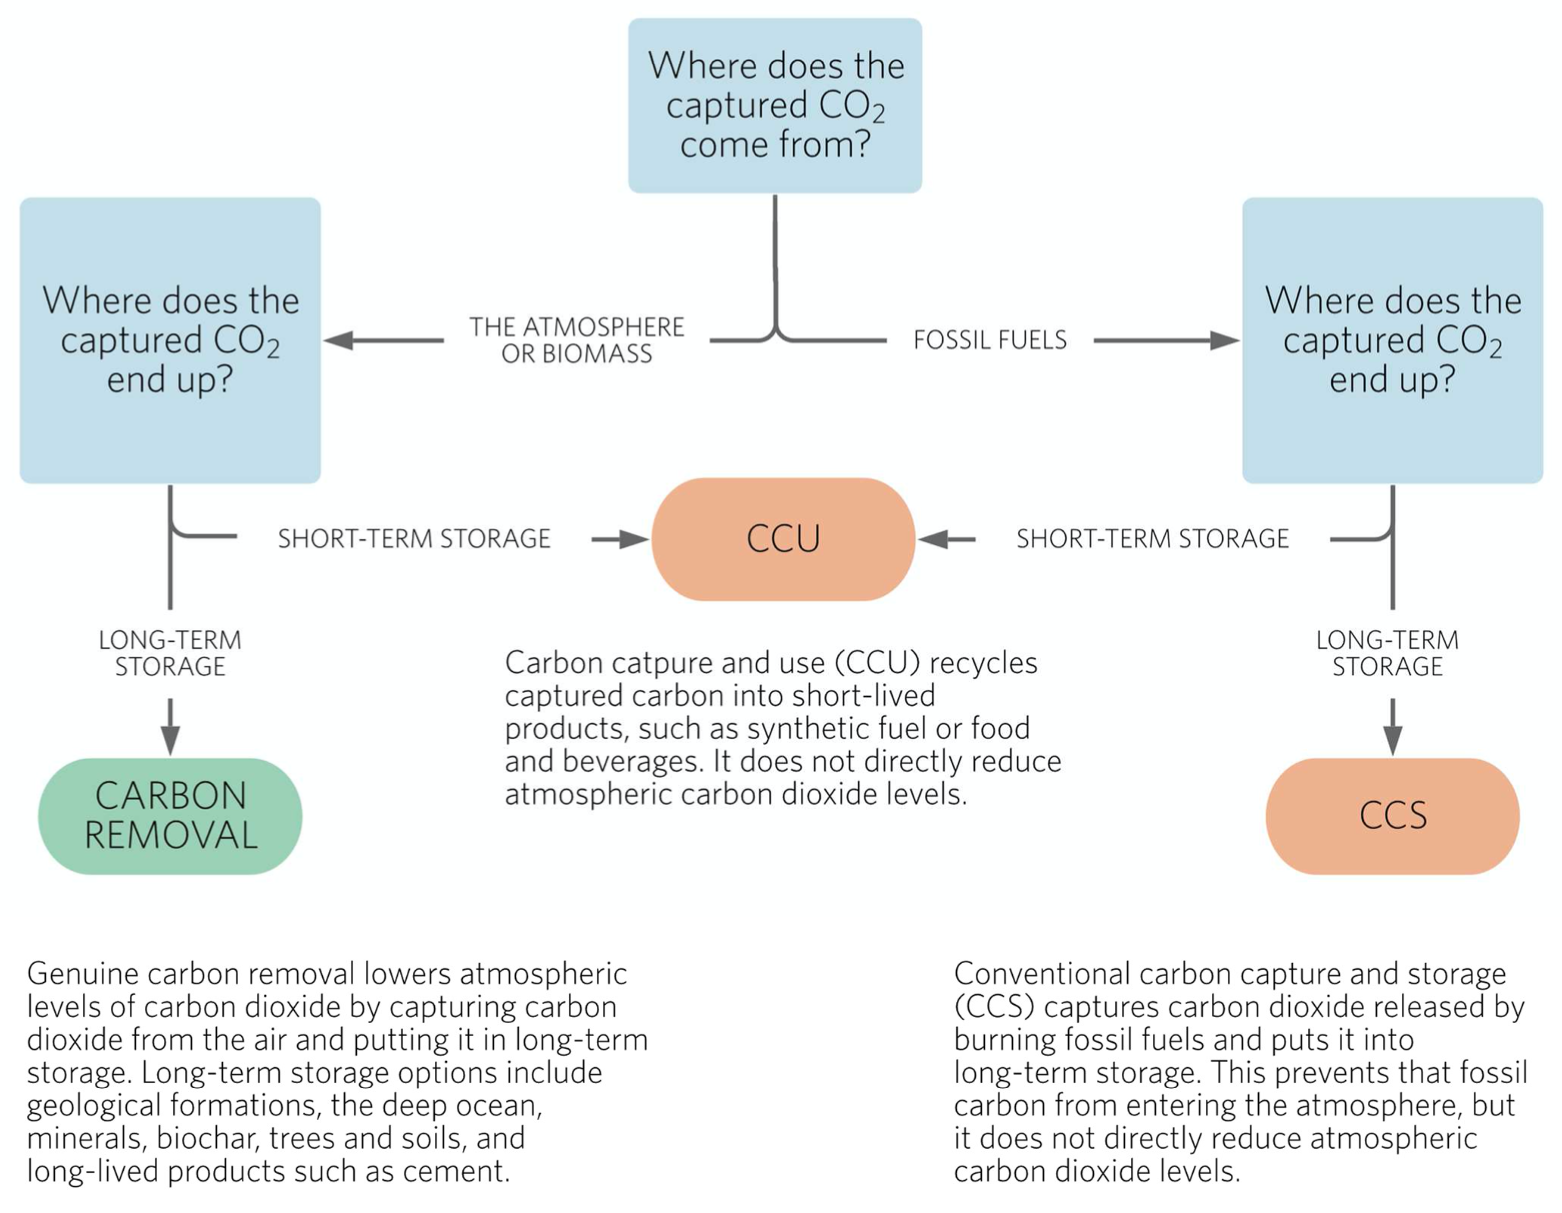 Flow chart showing the conditions under which carbon capture and use counts as a form of carbon removal.